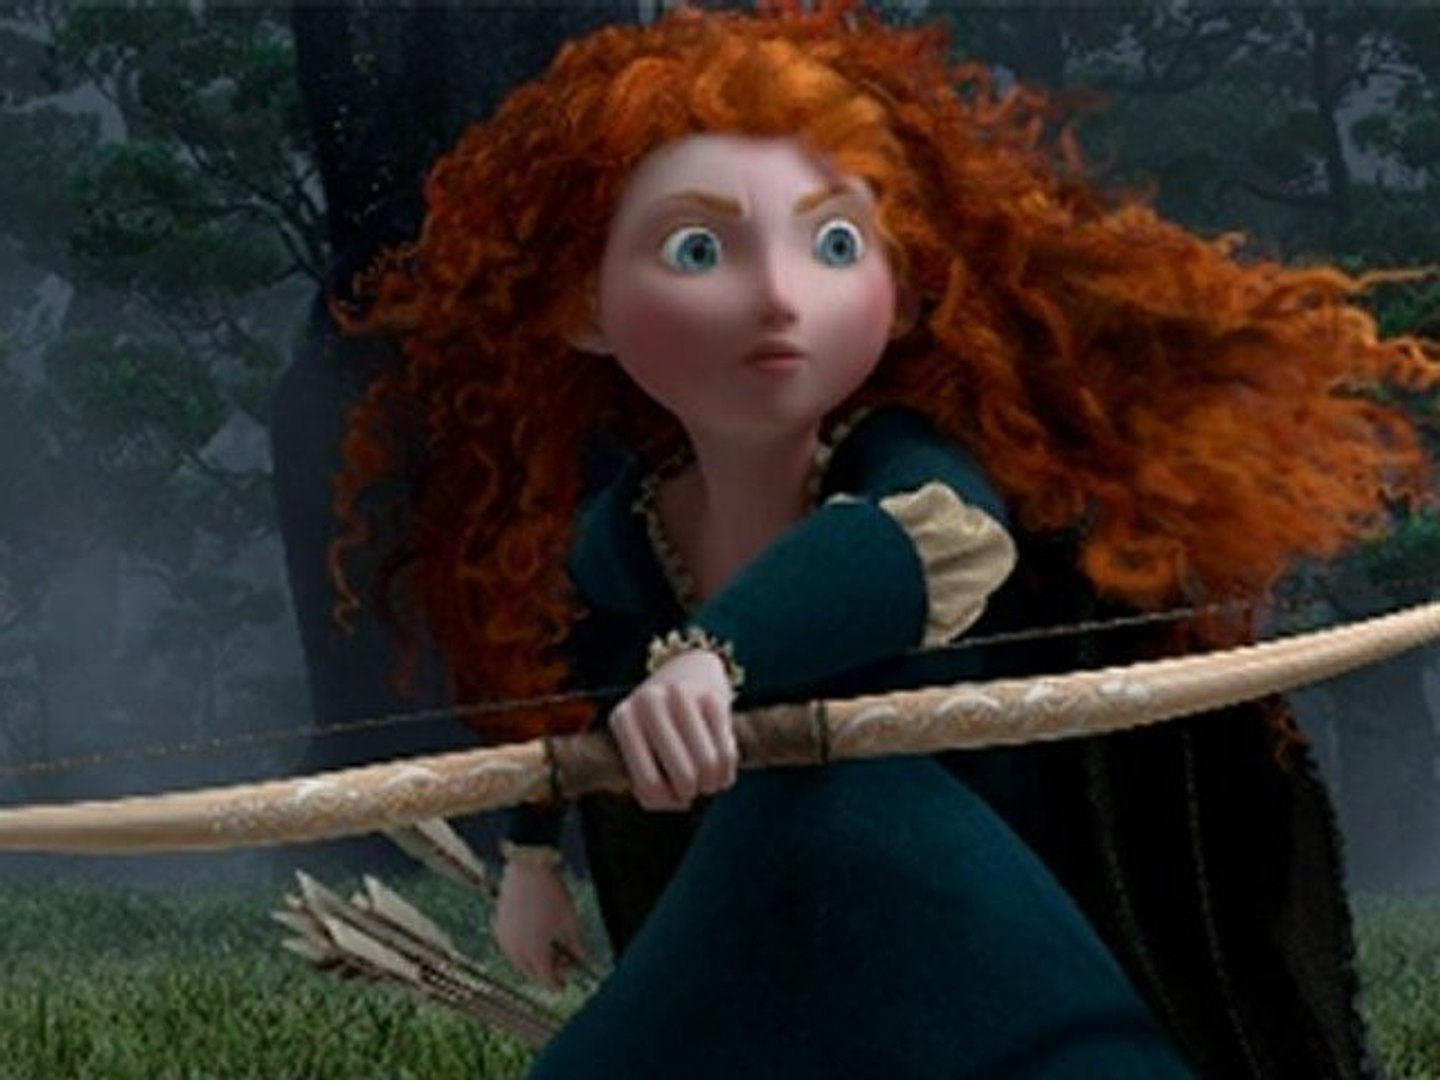 Brave Pixar Full Movie HD Watch Full Movie Online 2012 Part 1/9